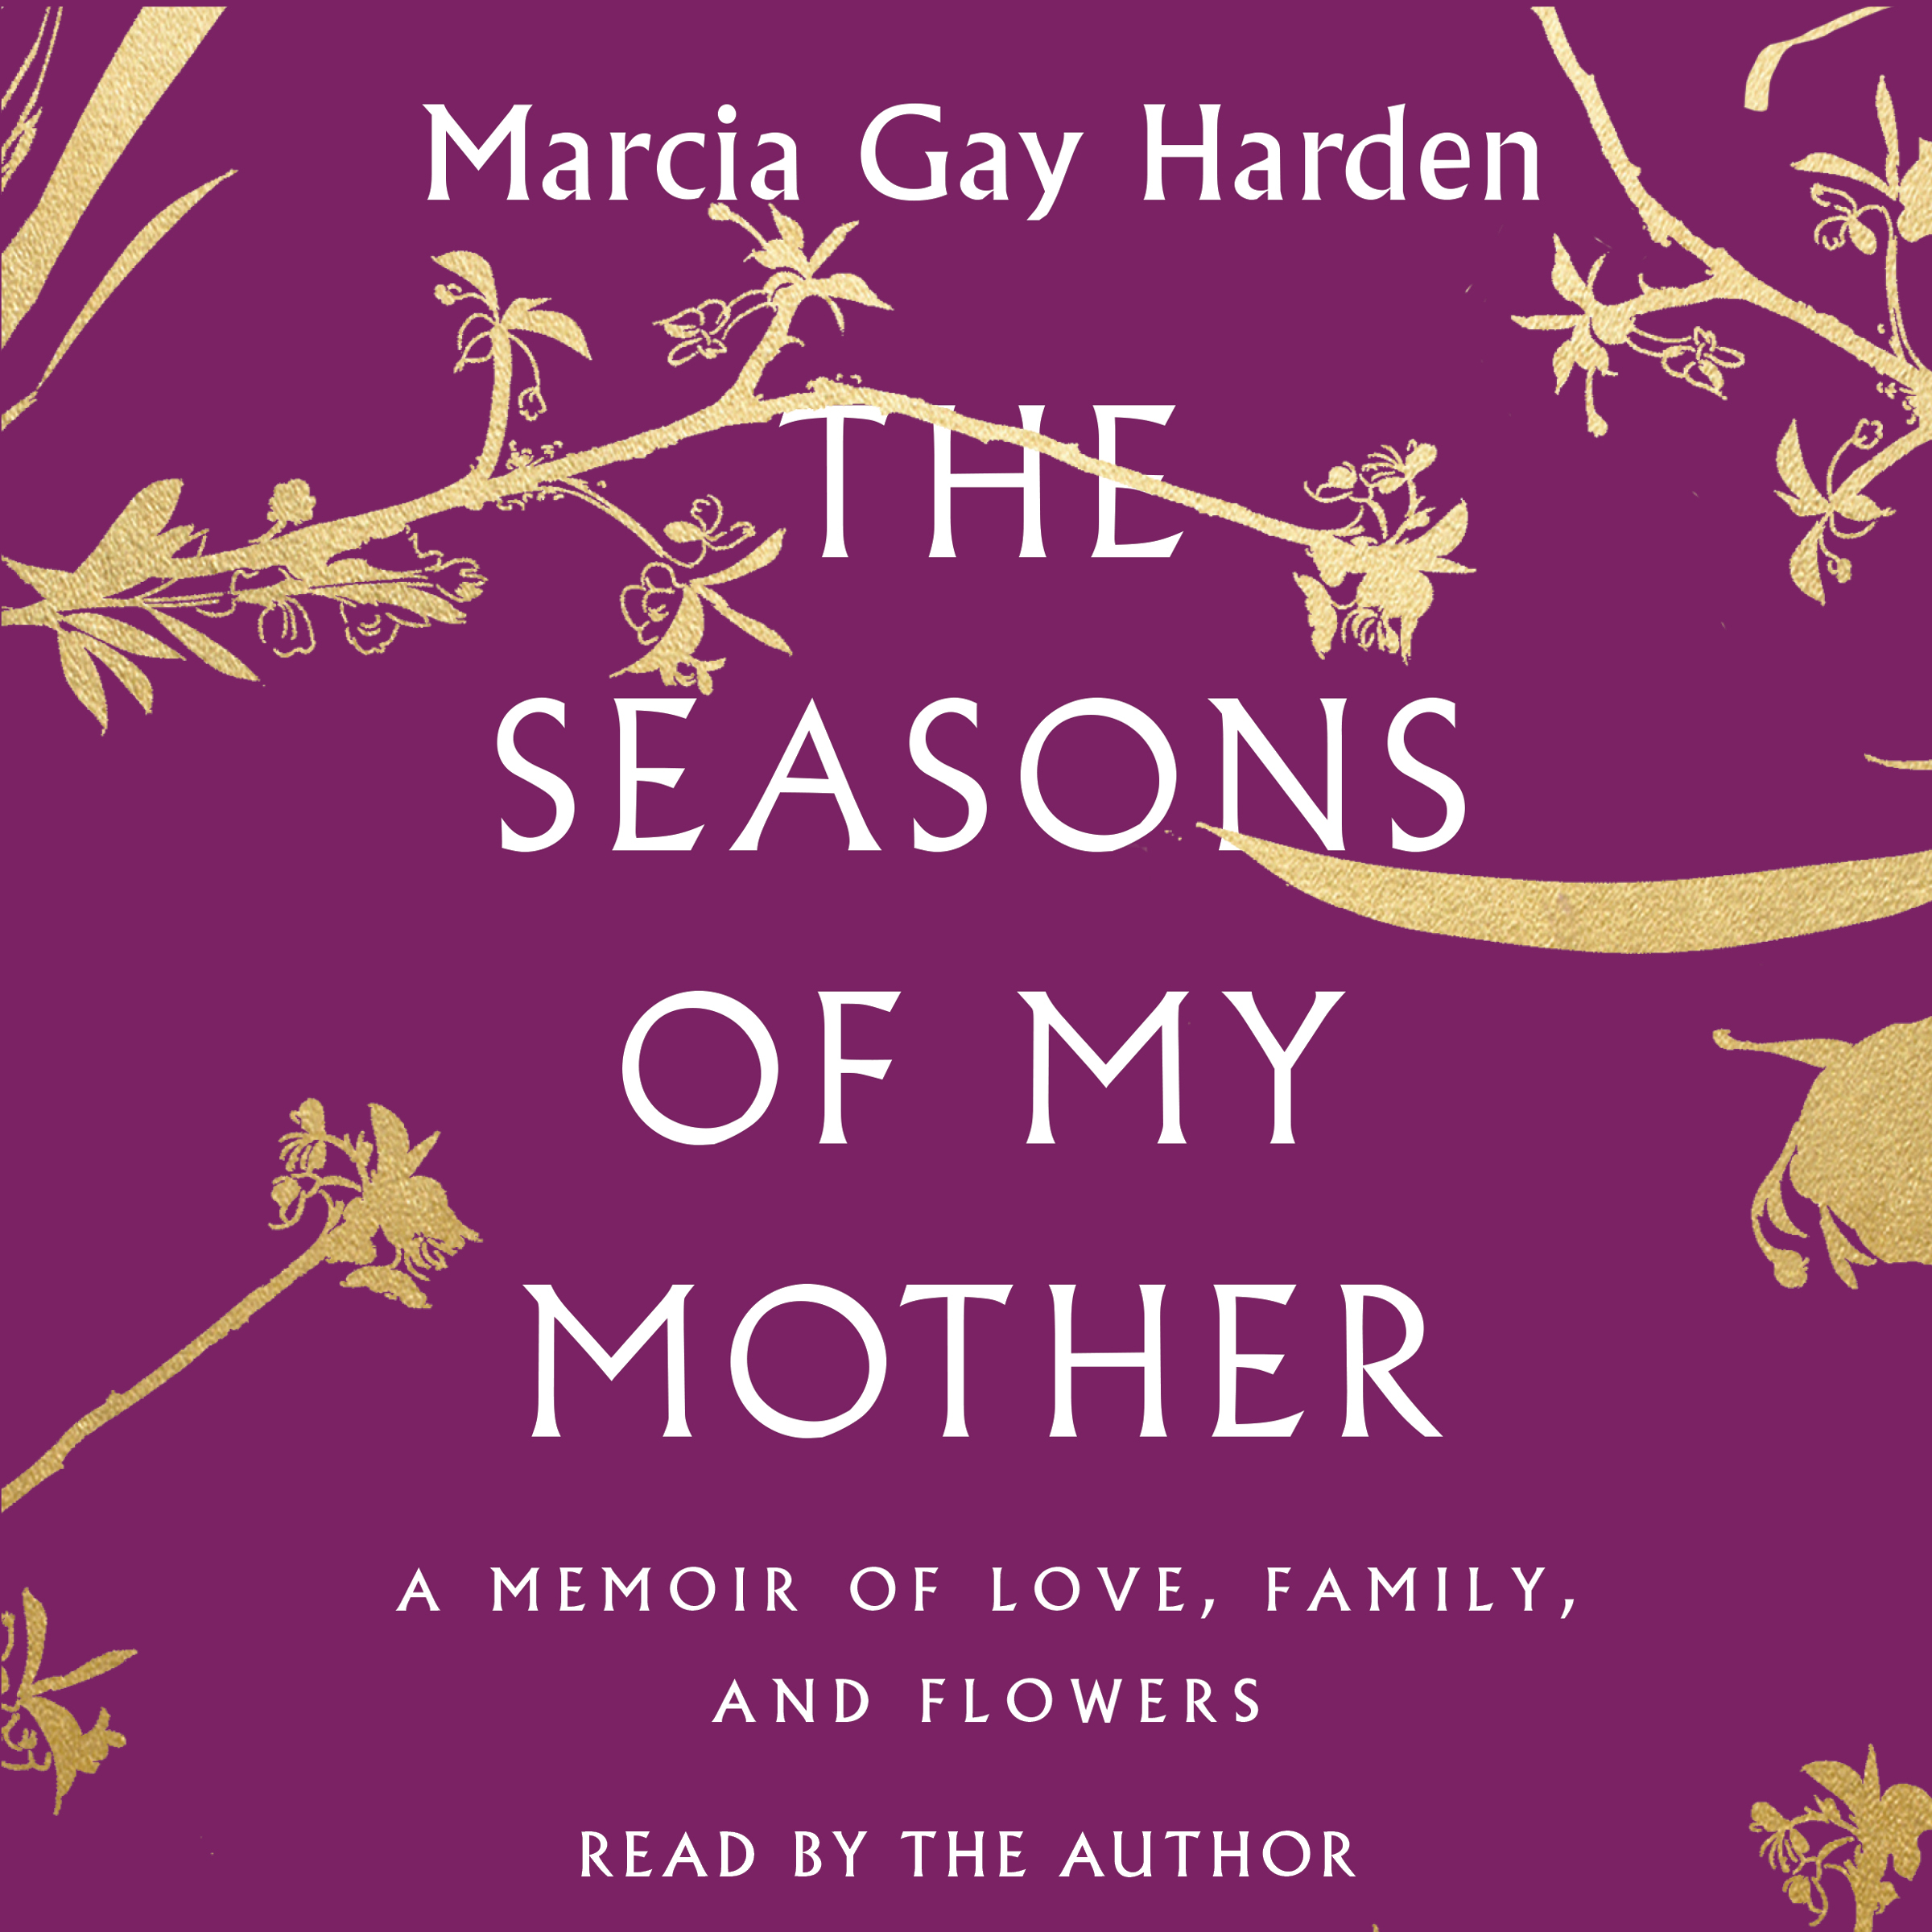 The seasons of my mother 9781508257141 hr